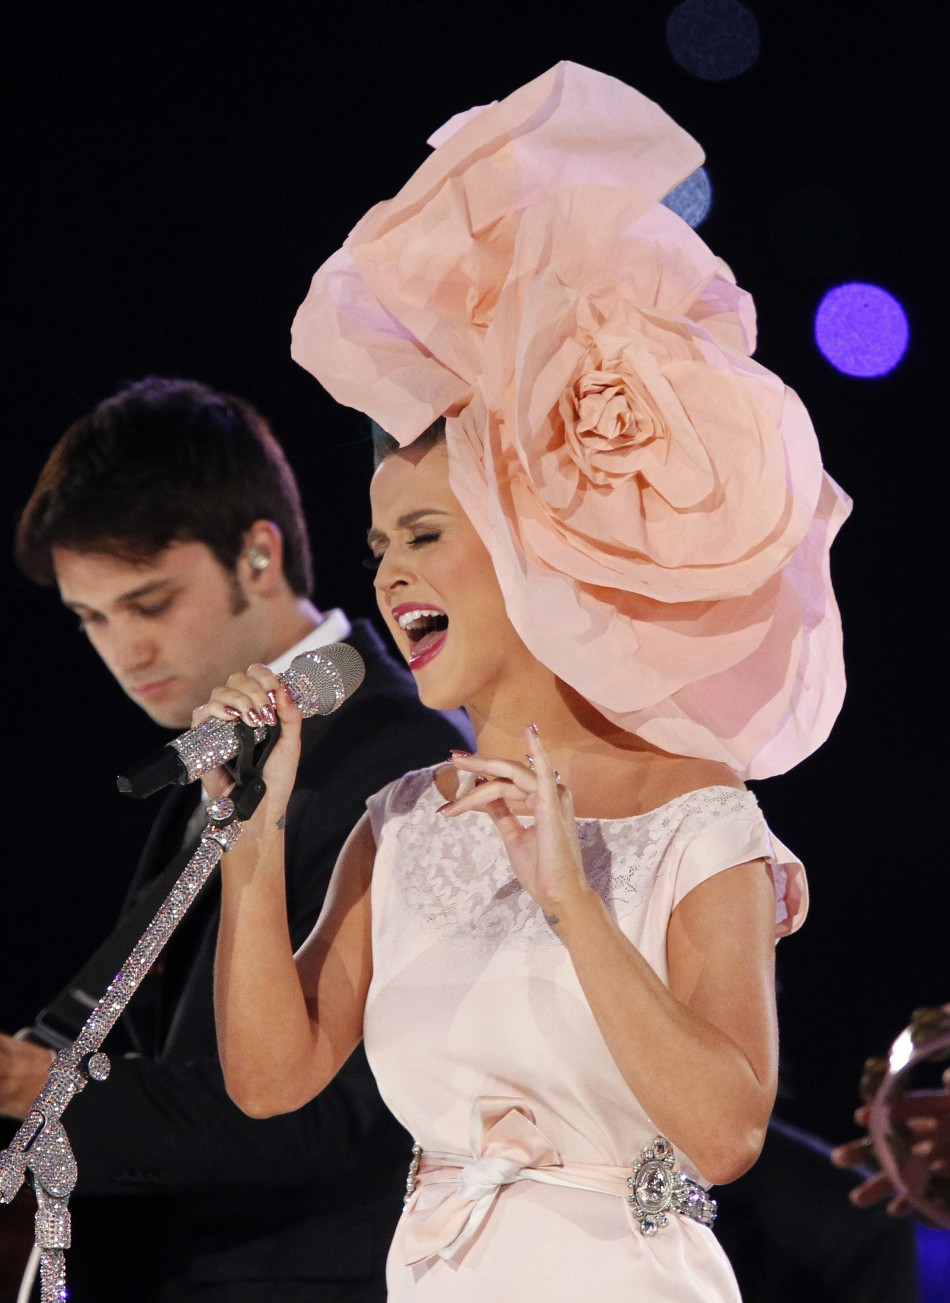 Katy Perry performs quotHey Judequot during the 2012 MusiCares Person of the Year tribute in Los Angeles